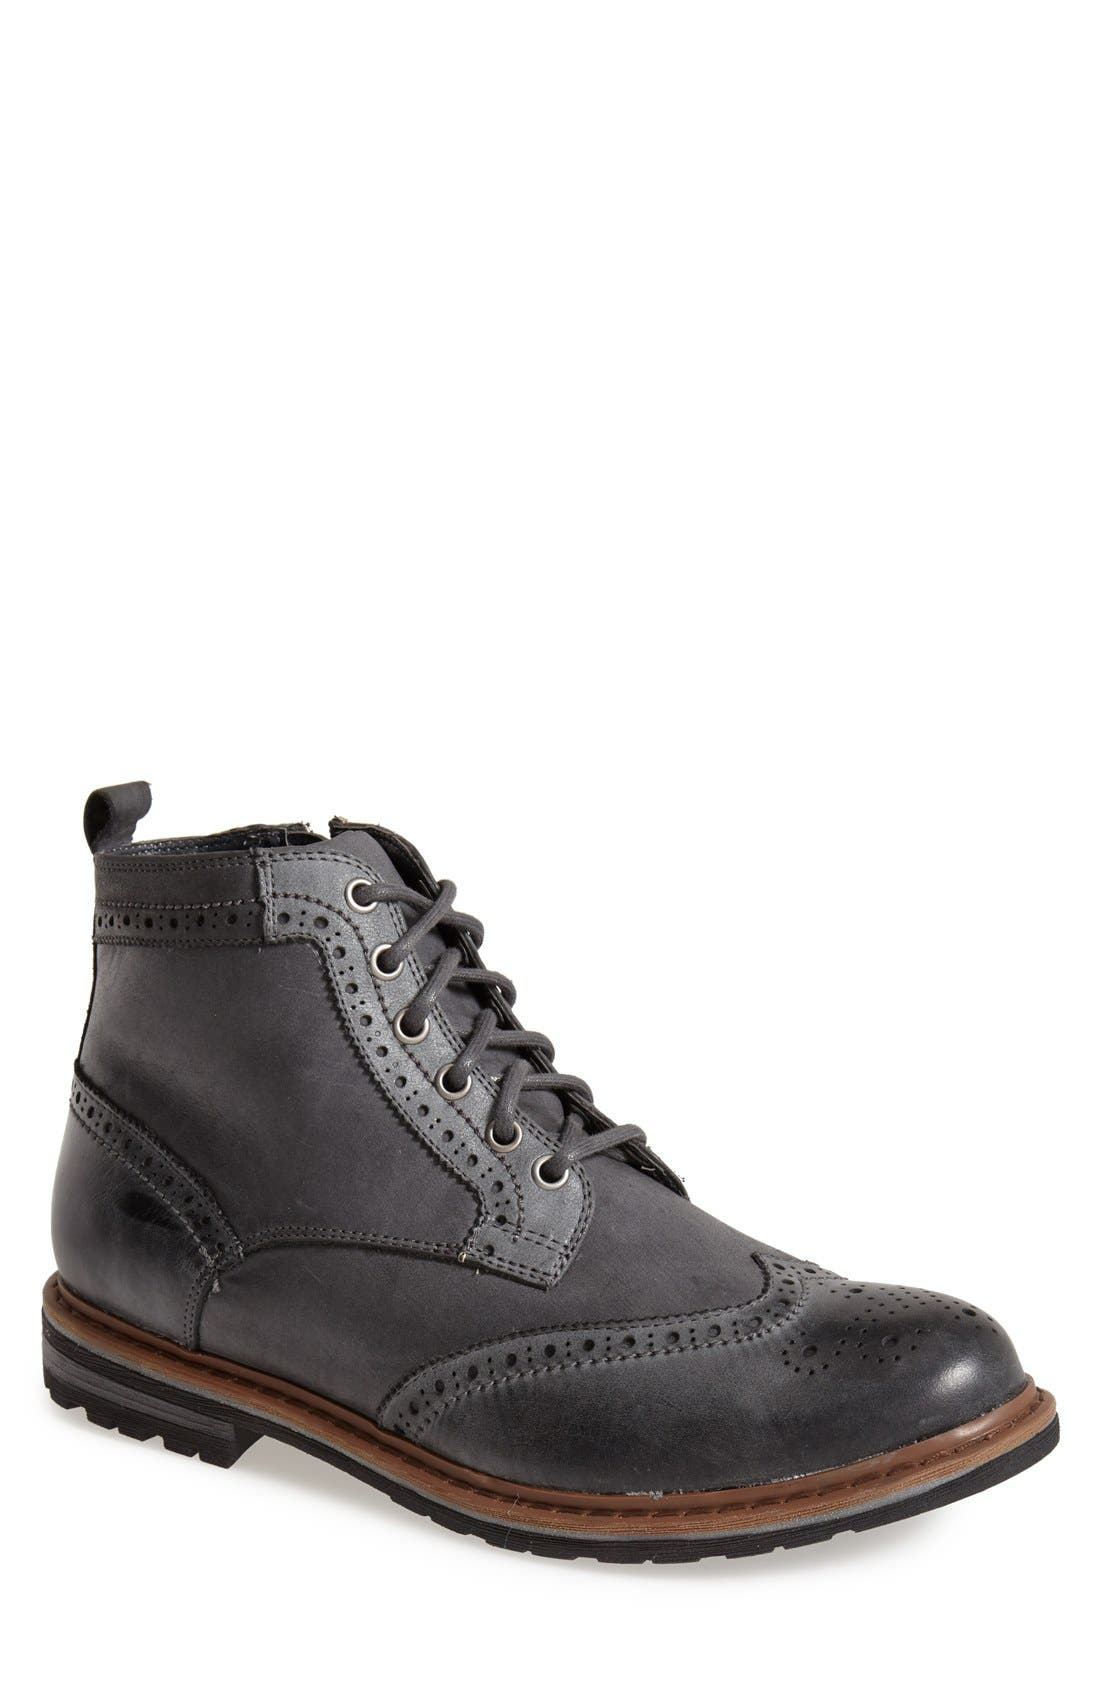 'Damien' Waterproof Wingtip Boot,                         Main,                         color, 021